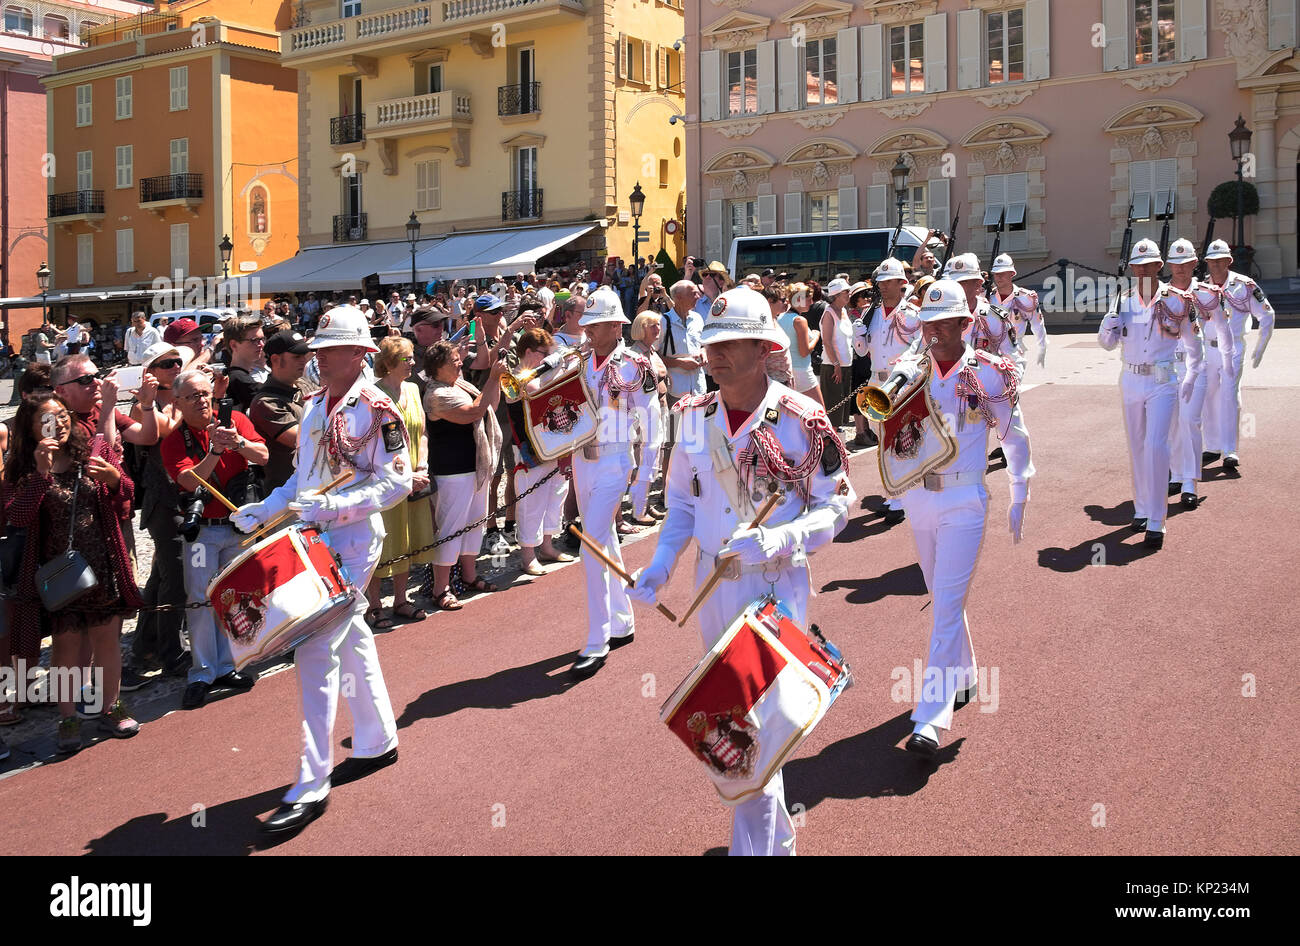 changing of the guards at the royal palace in monaco - Stock Image